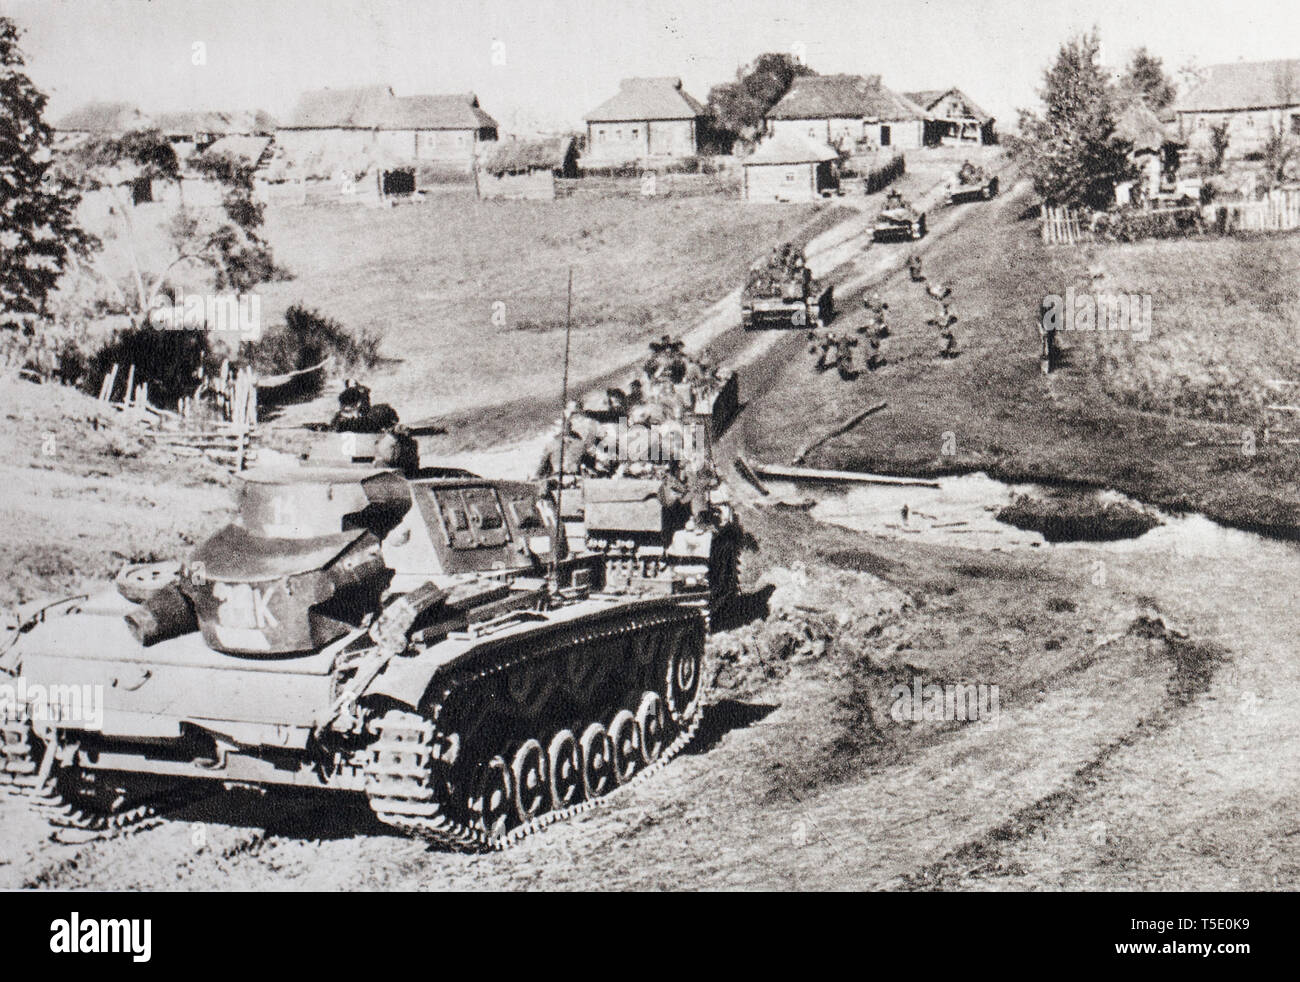 German troops on the East Front (summer 1941). A column of tanks pushes a pin of recognition. The German High Command has long anticipated victory, th - Stock Image